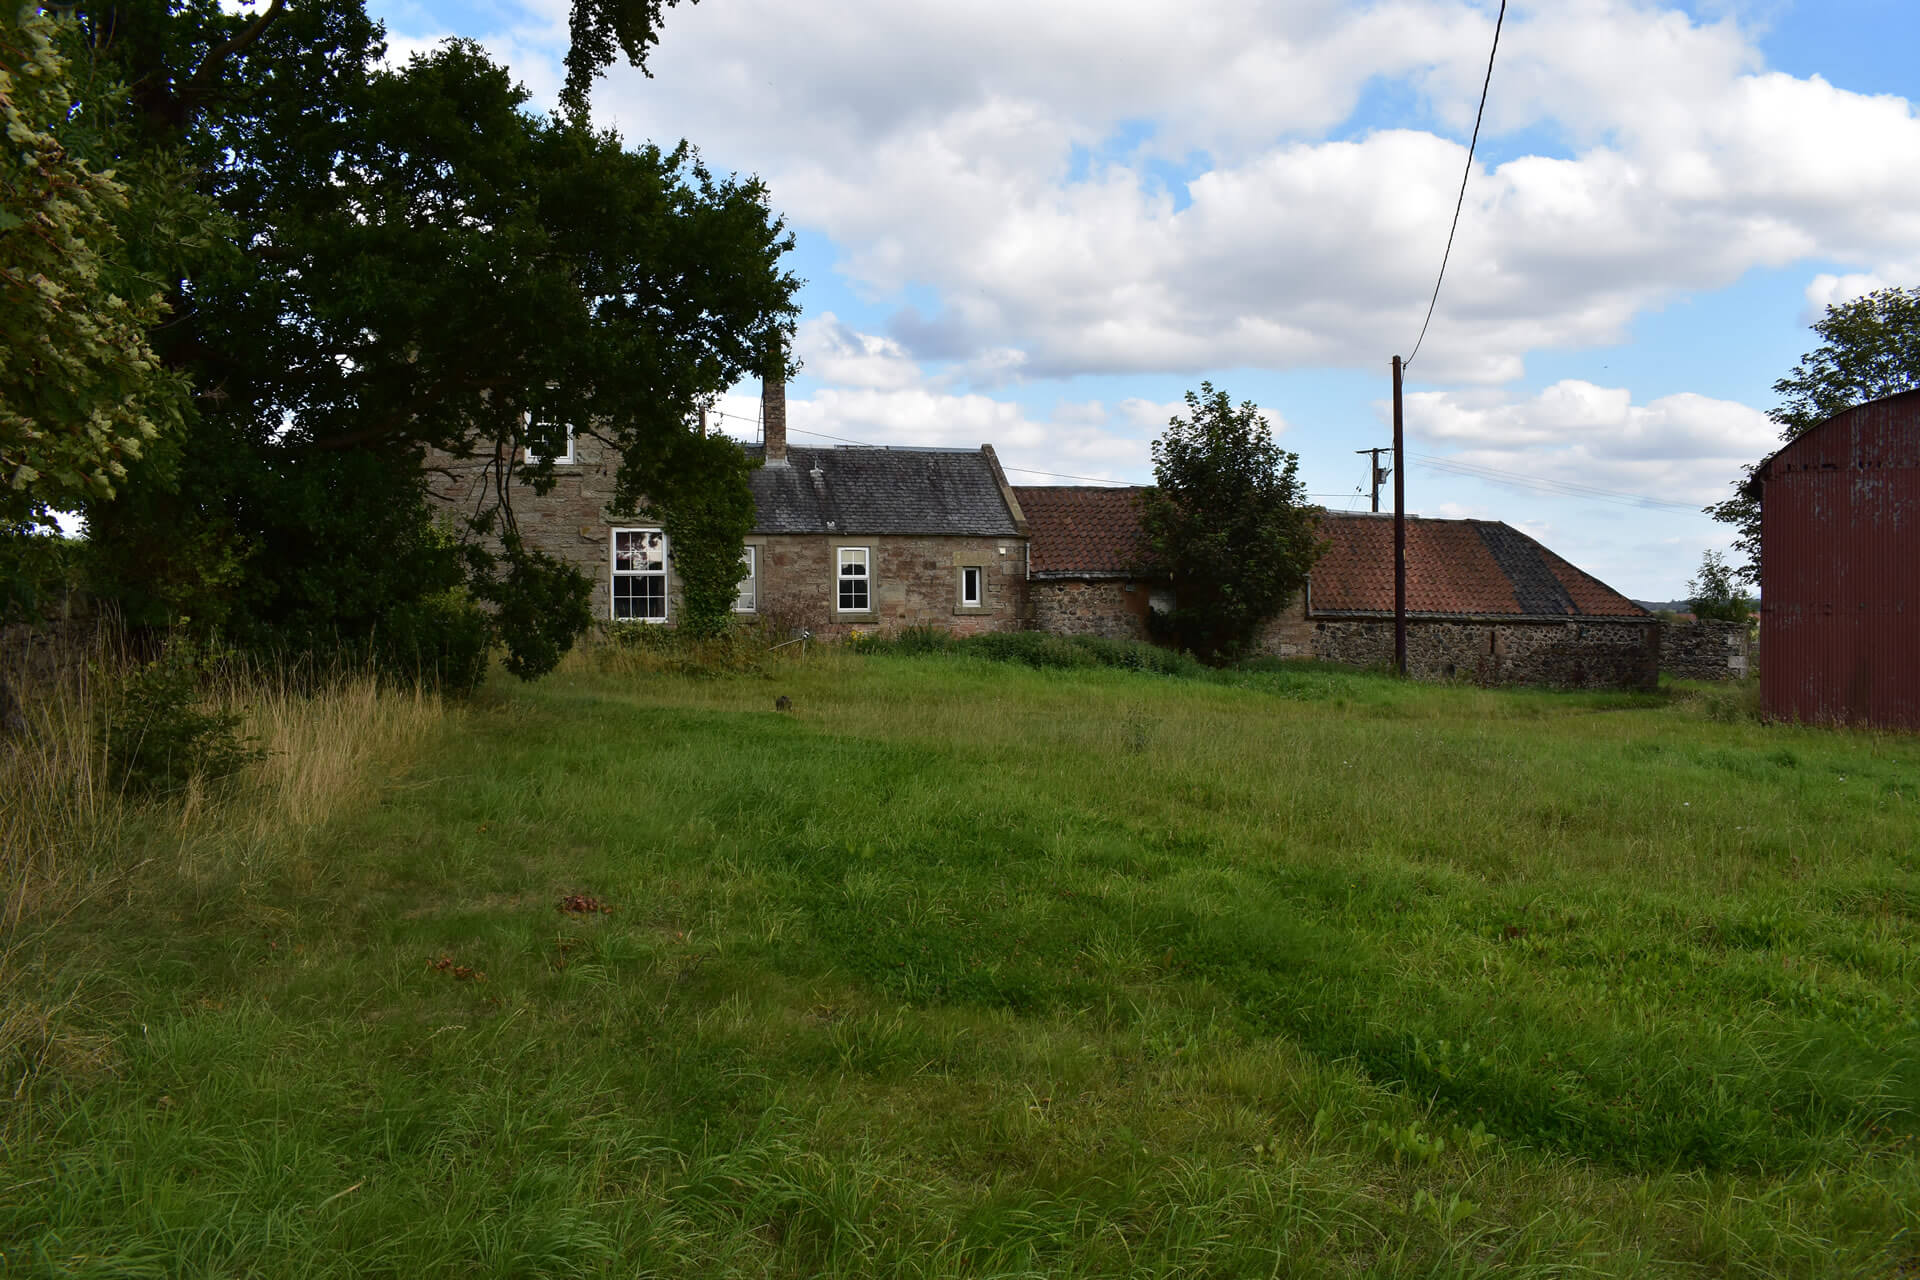 burghmuir farm from field looking at building